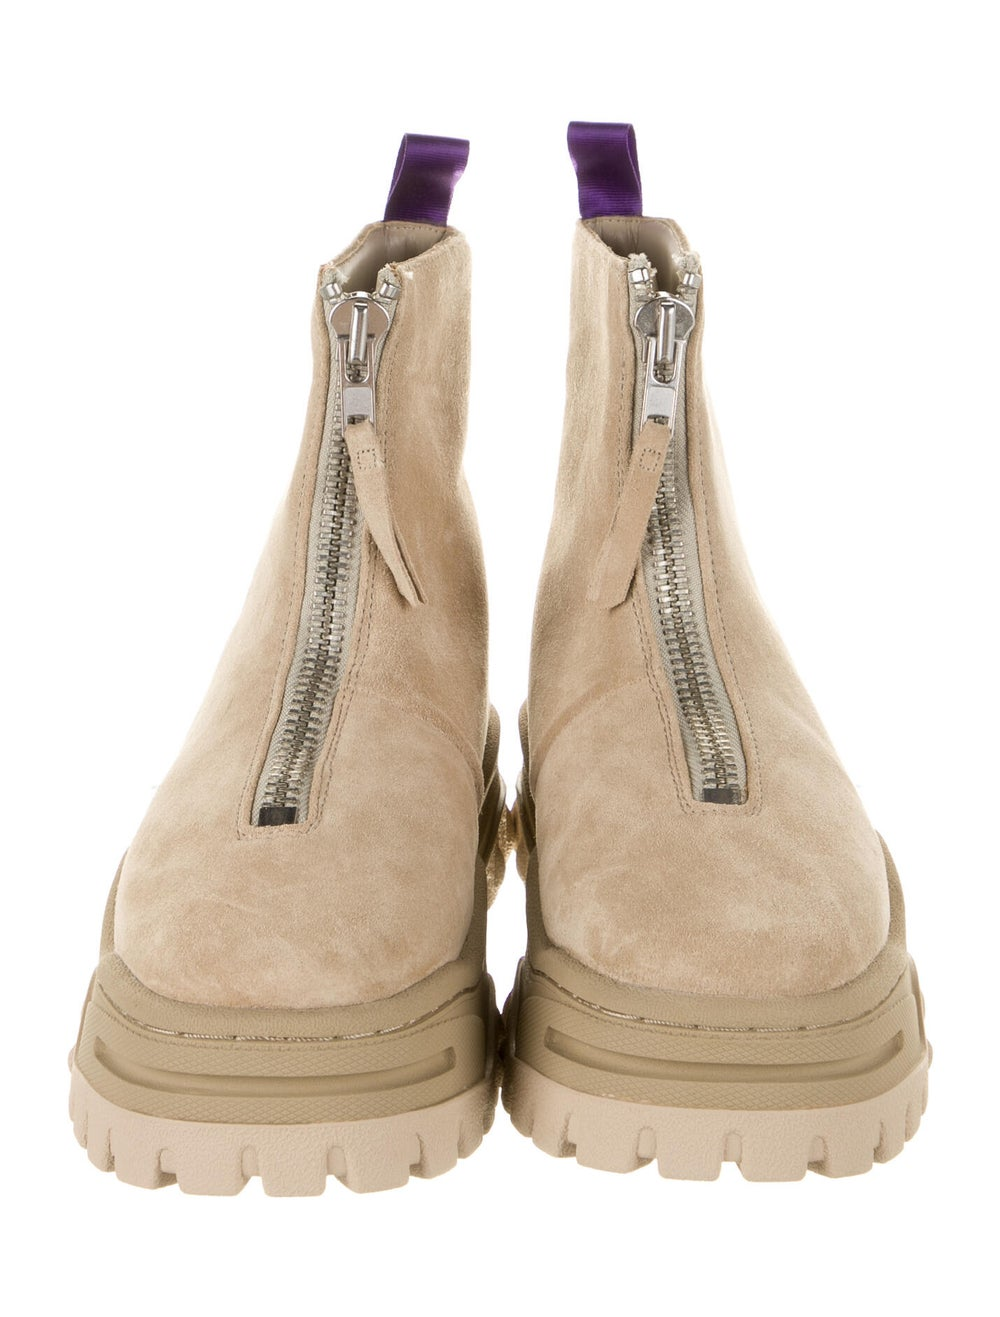 Eytys Suede Boots - image 3